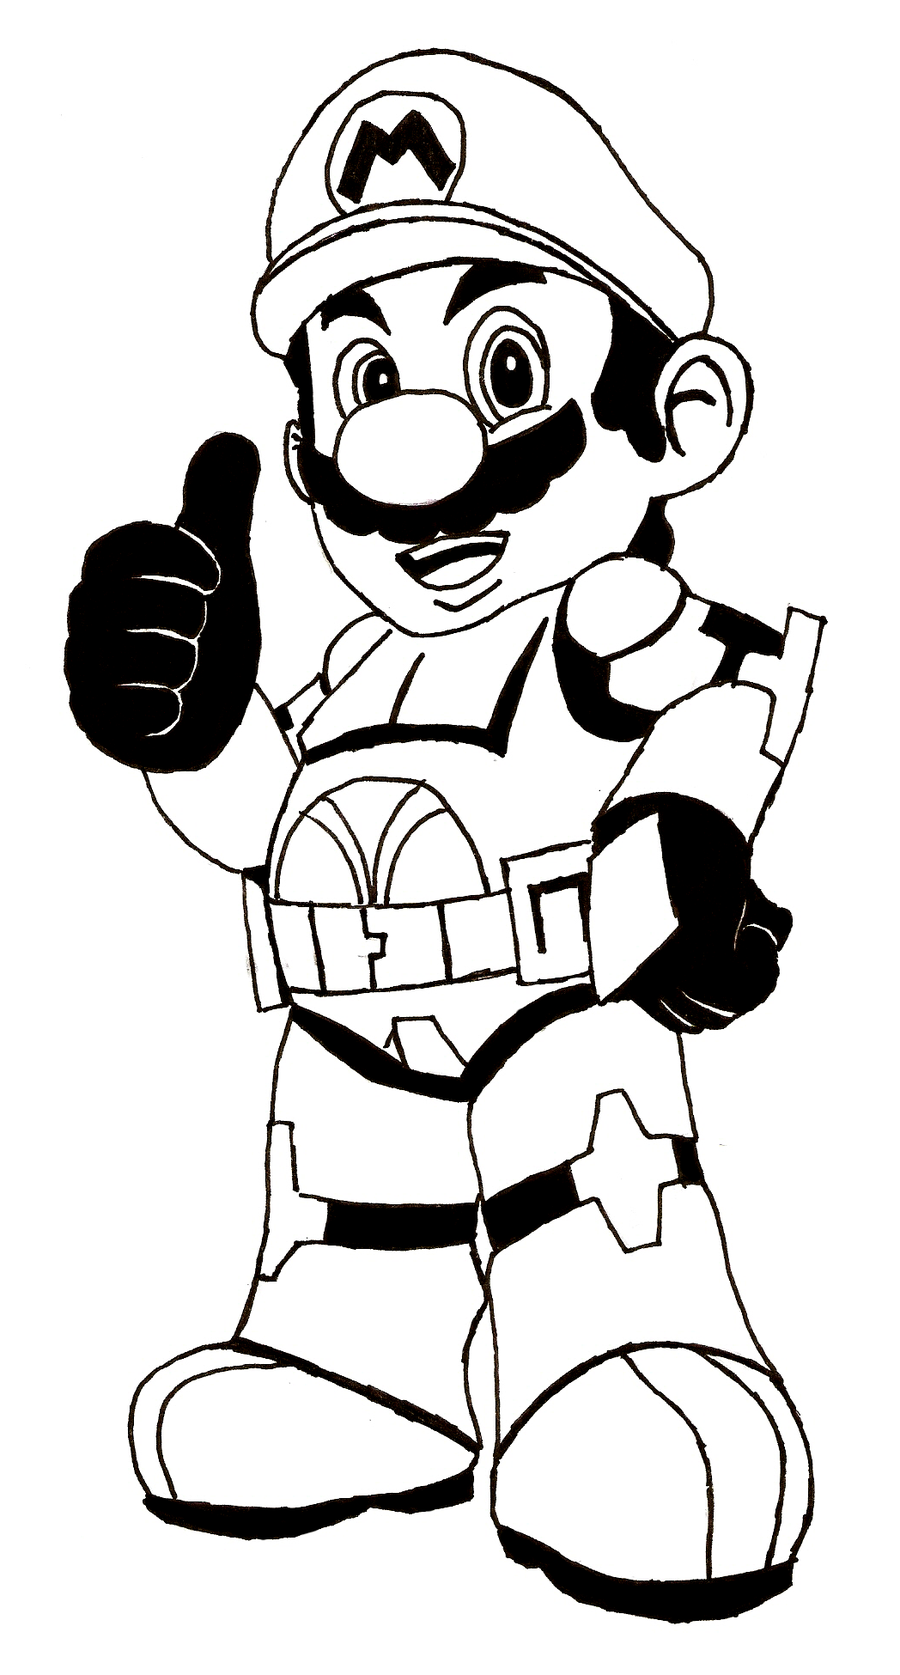 Super Mario Free Printable Coloring Pages Coloring Home